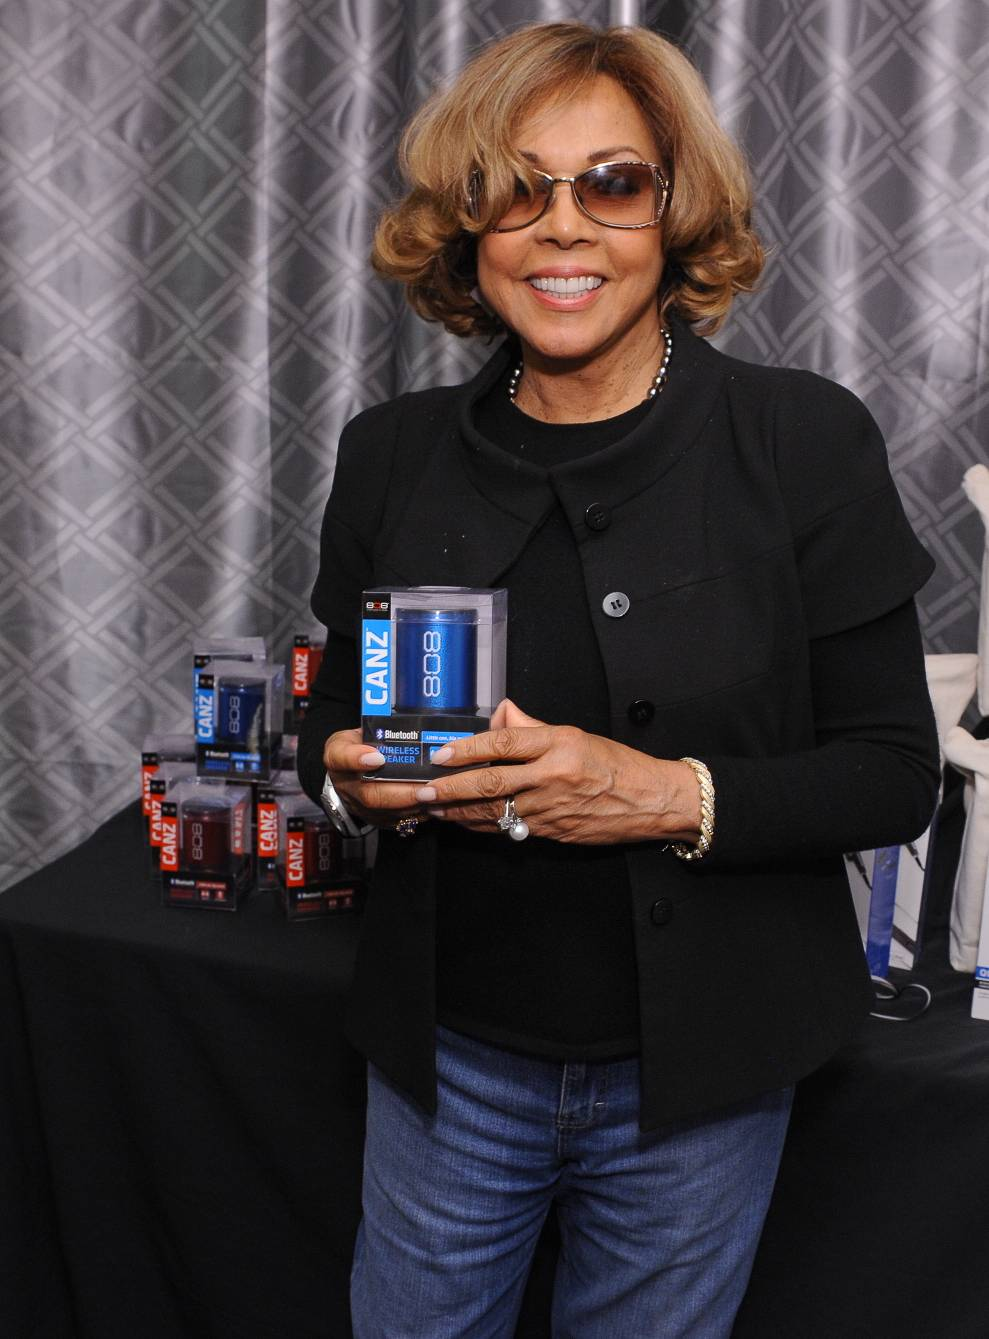 Diahann Carroll checks out 808Canz at the 65th Emmy Awards Giving Suite by Backstage Creations Sept. 21 in L.A. (Adrian Sidney/Invision)